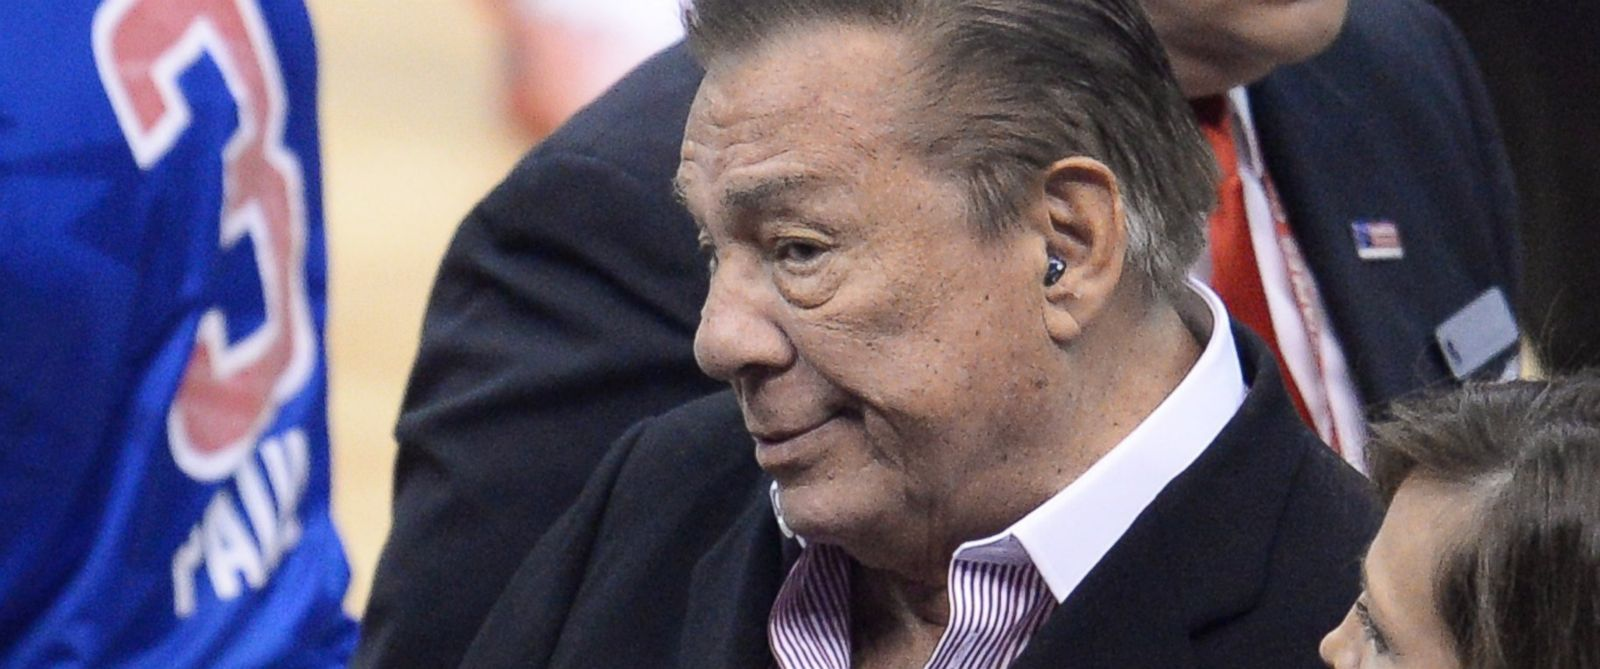 PHOTO: Los Angeles Clippers owner Donald Sterling